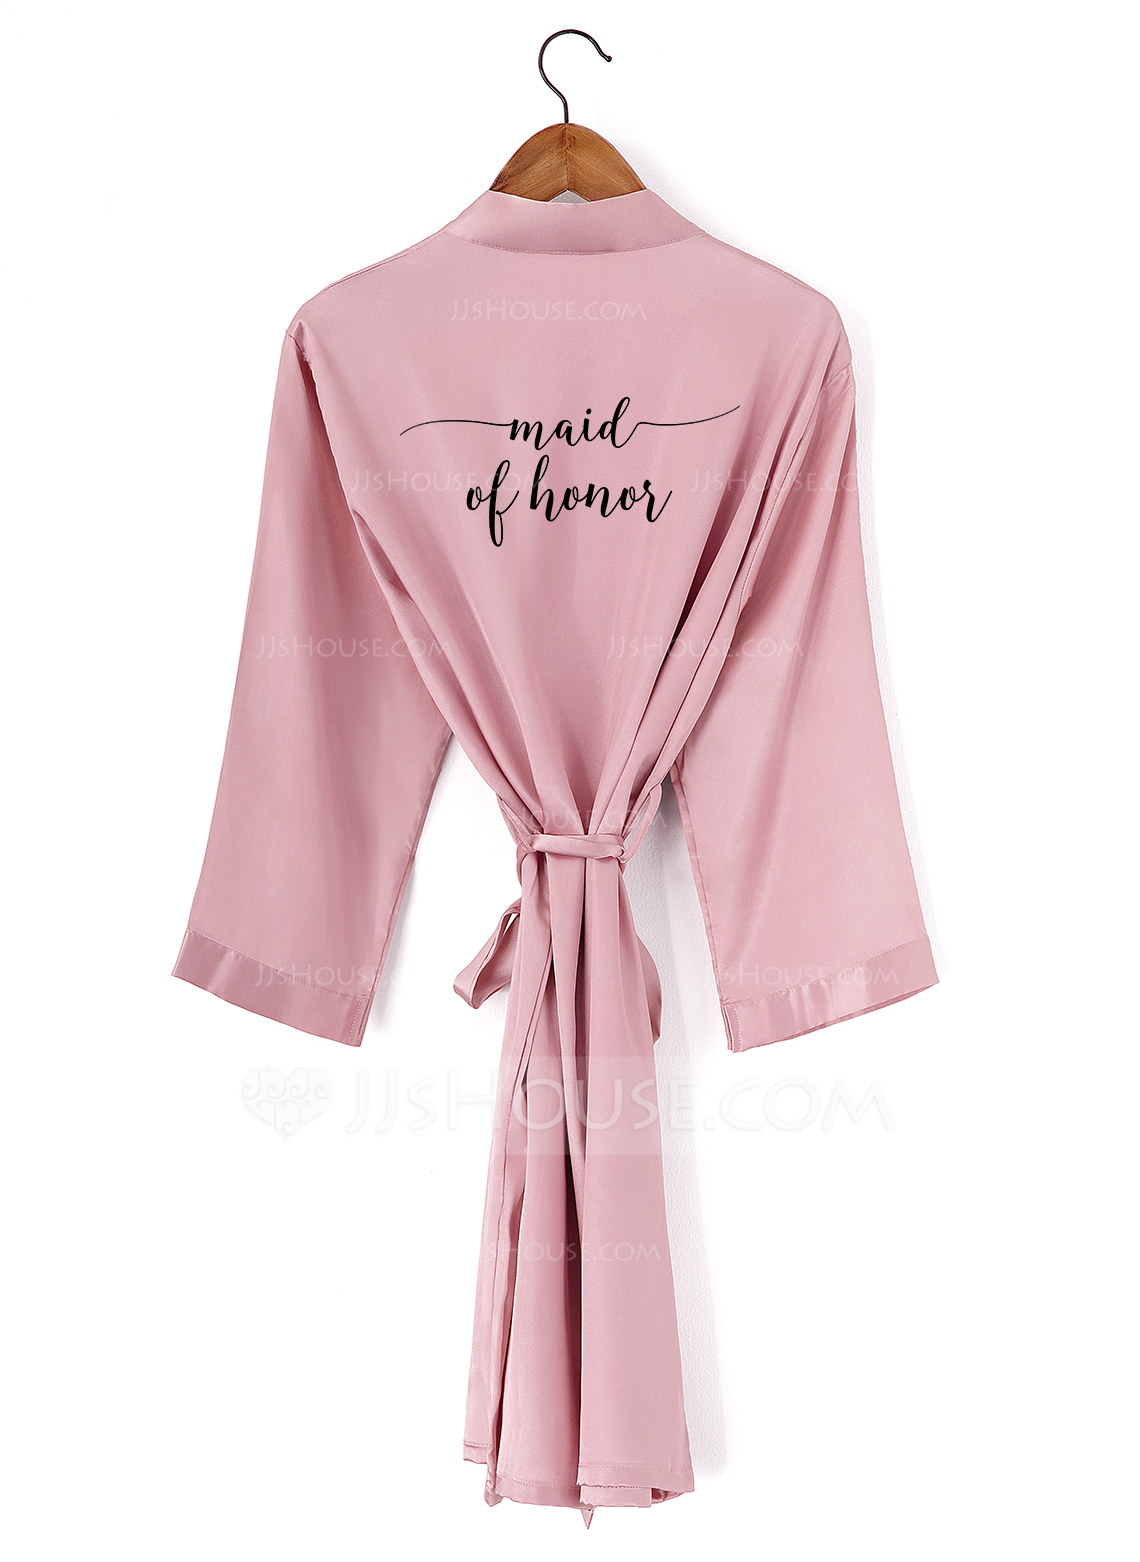 Non-personalized Charmeuse Bridesmaid Embroidered Robes